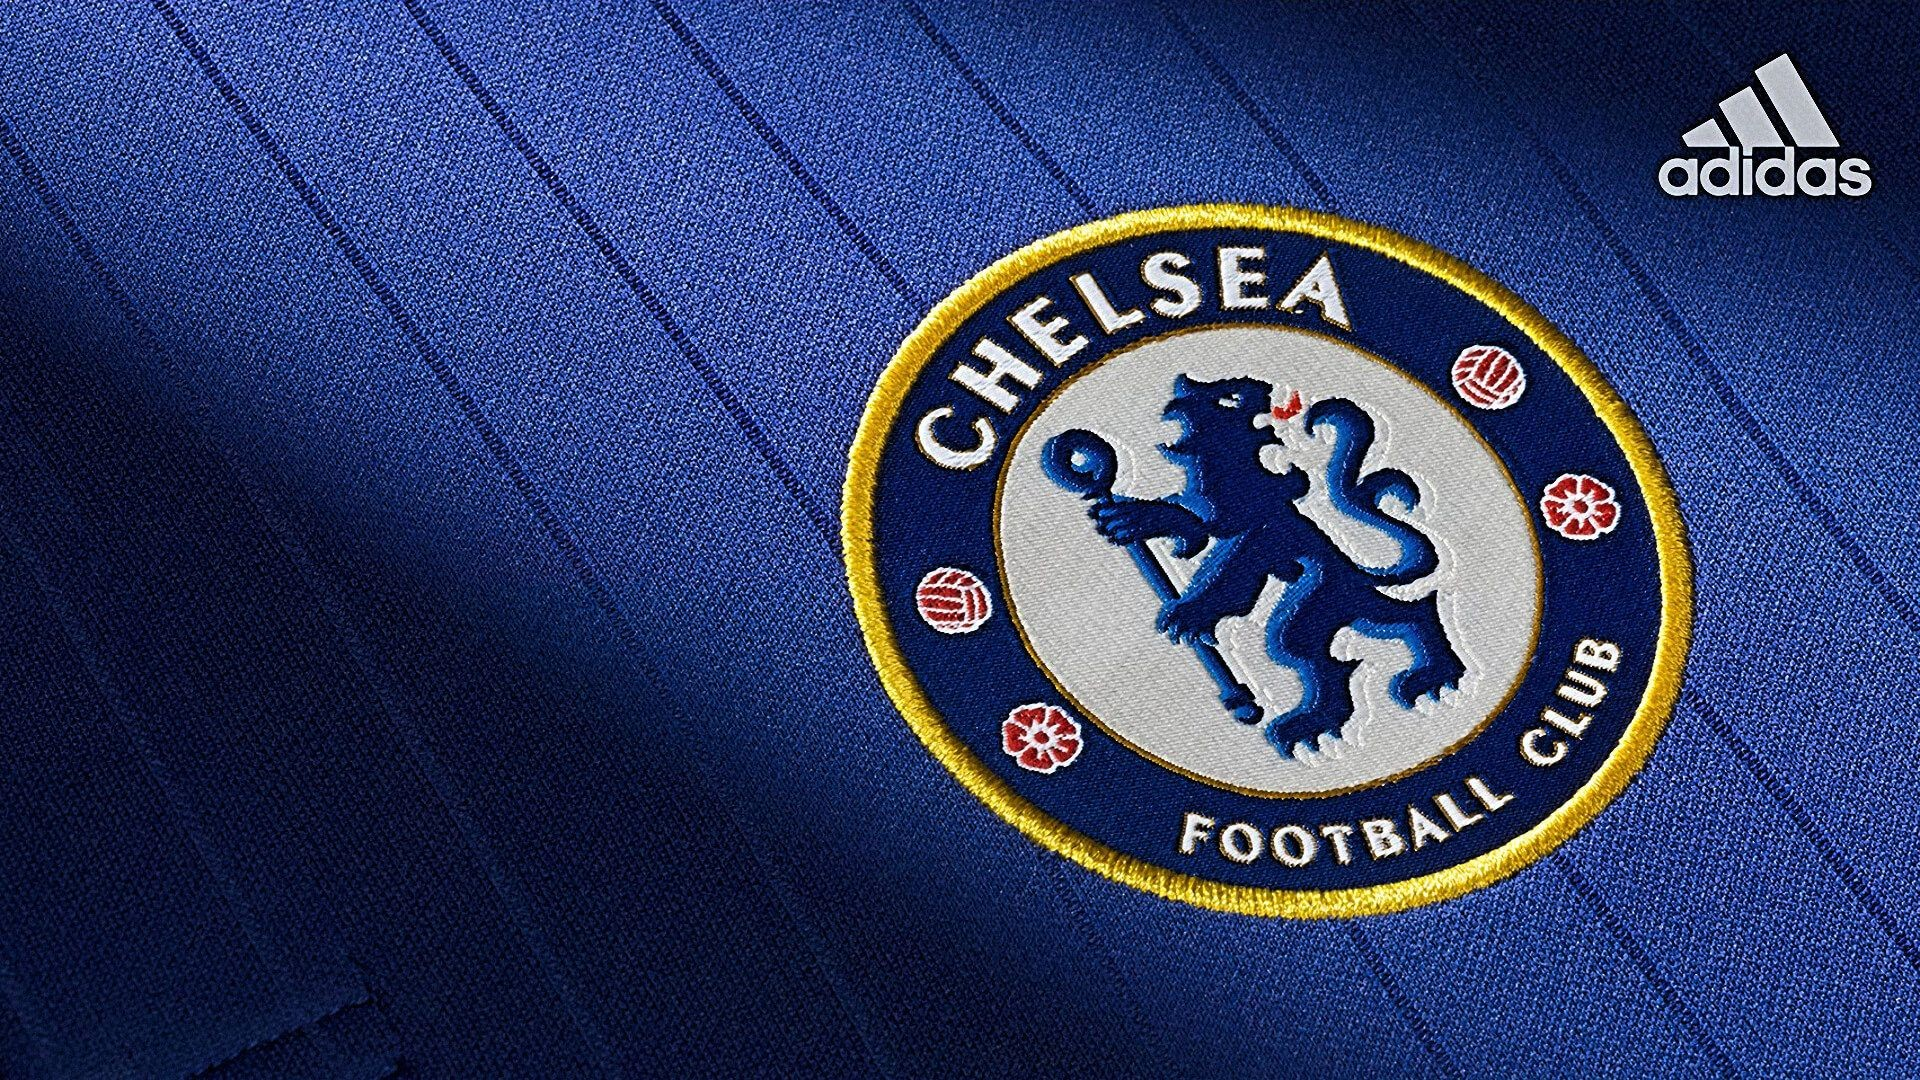 Chelsea Wallpaper 2018 HD (68+ Images